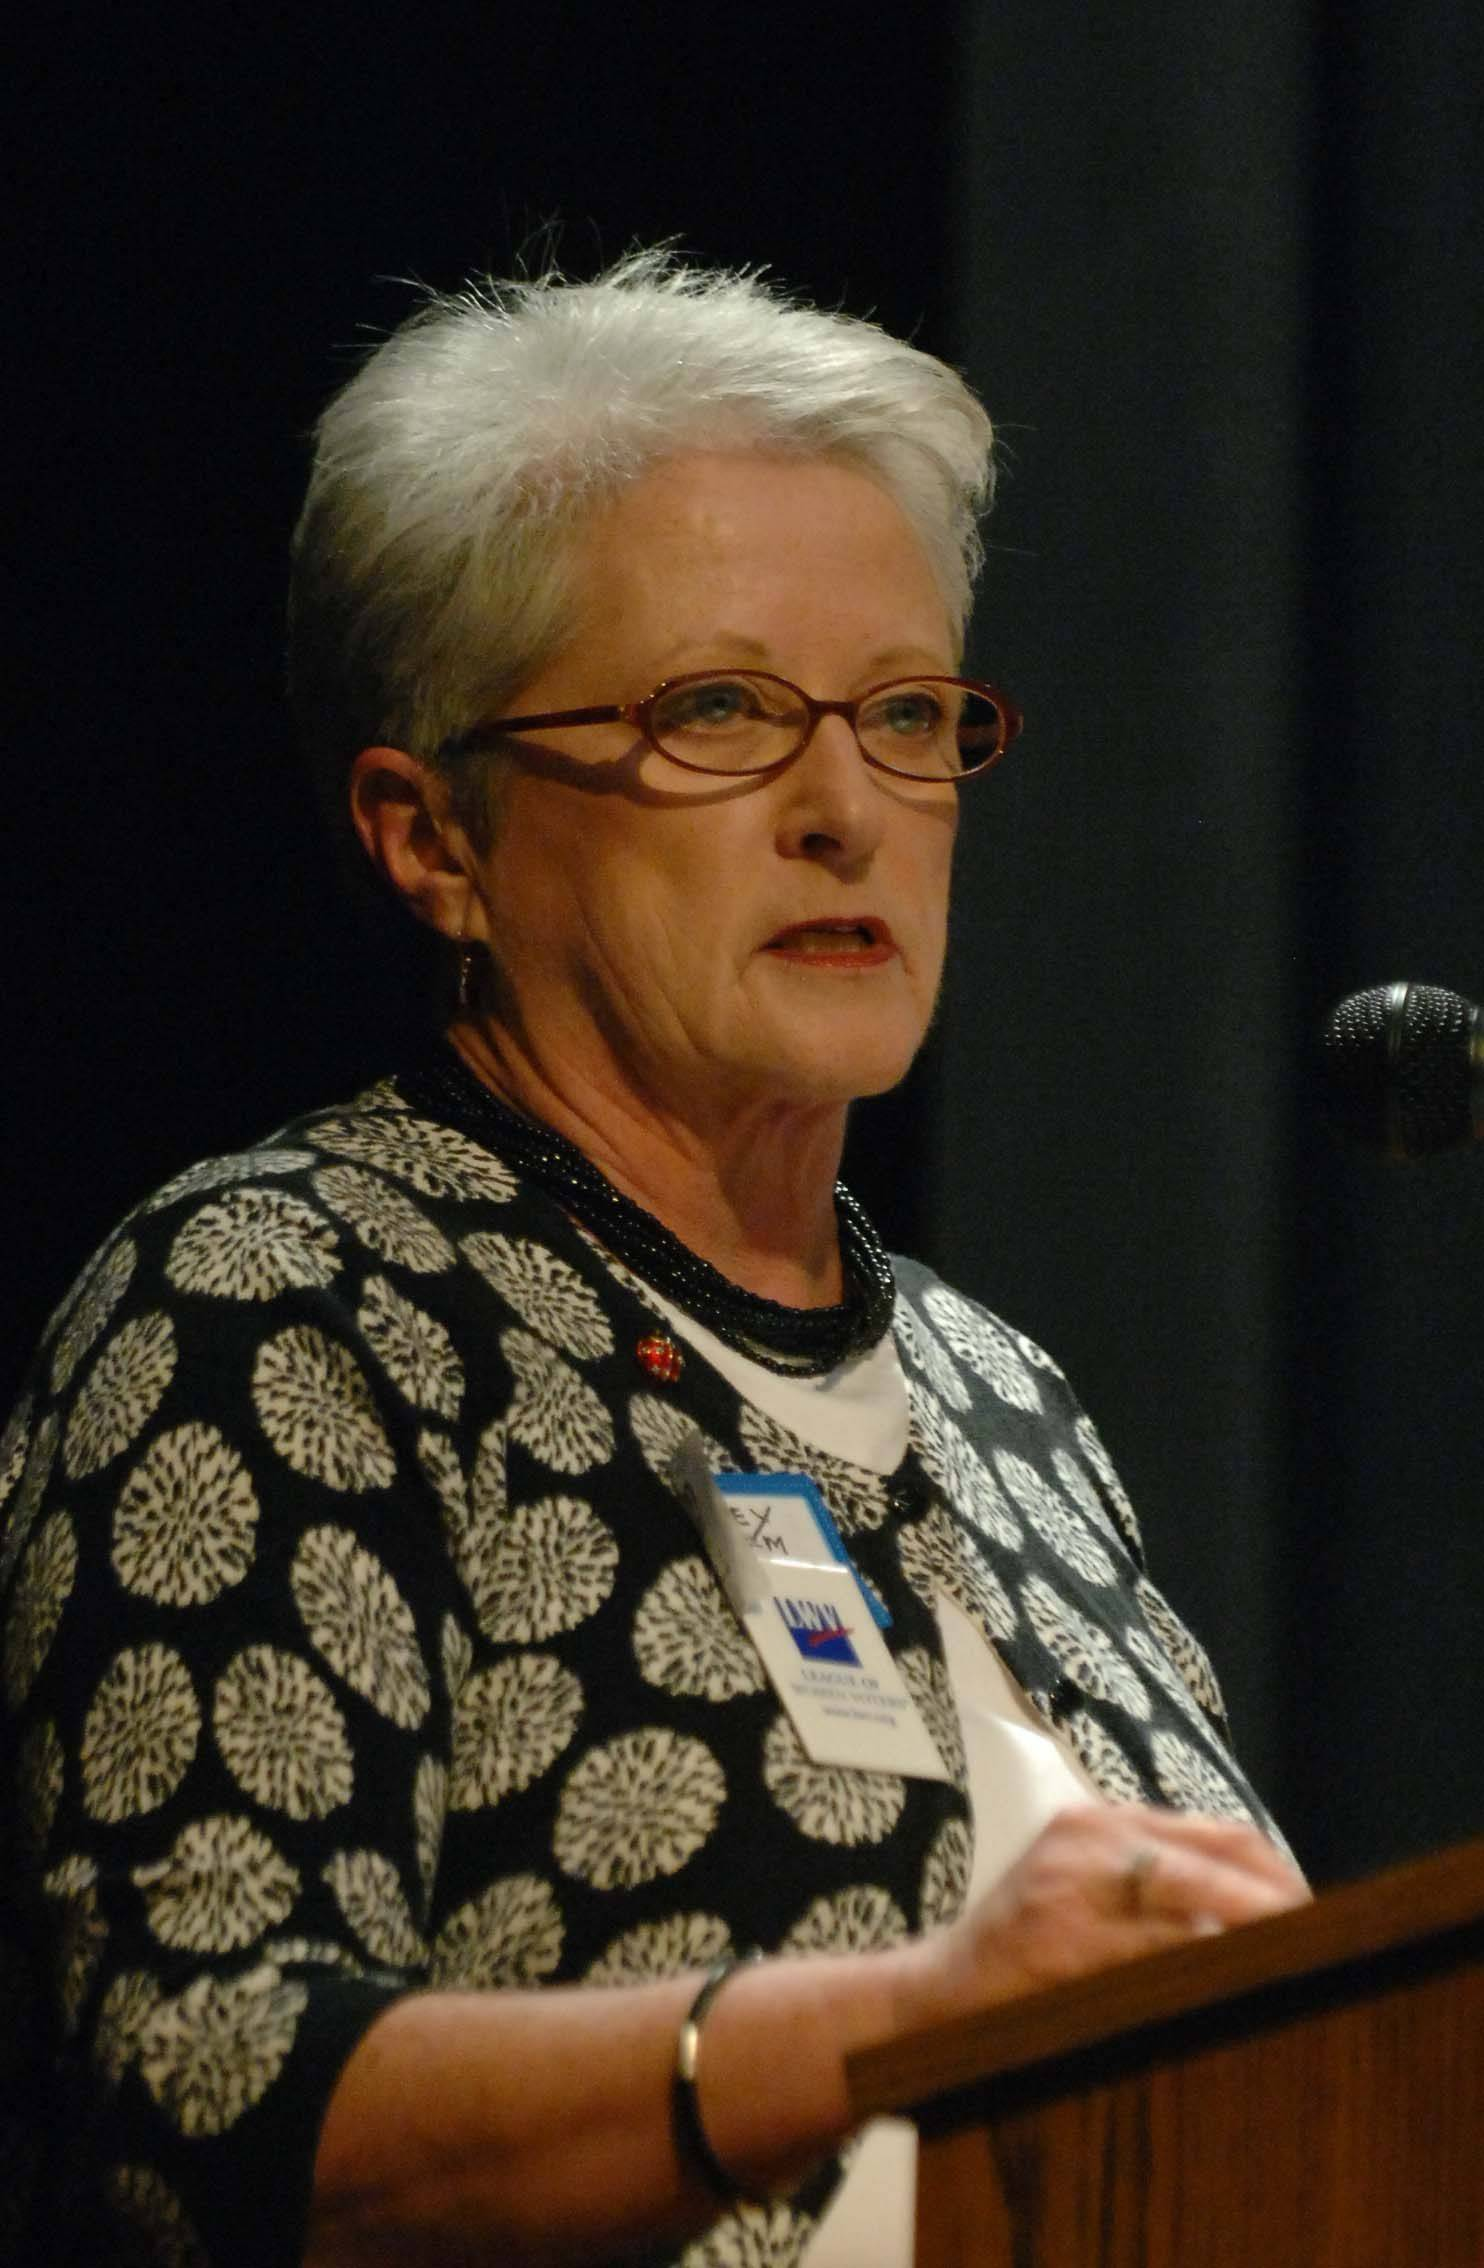 Missey Wilhelm, president of the League of Women Voters of Wheaton, makes introductions during a candidate forum last week at the Wheaton Community Center.